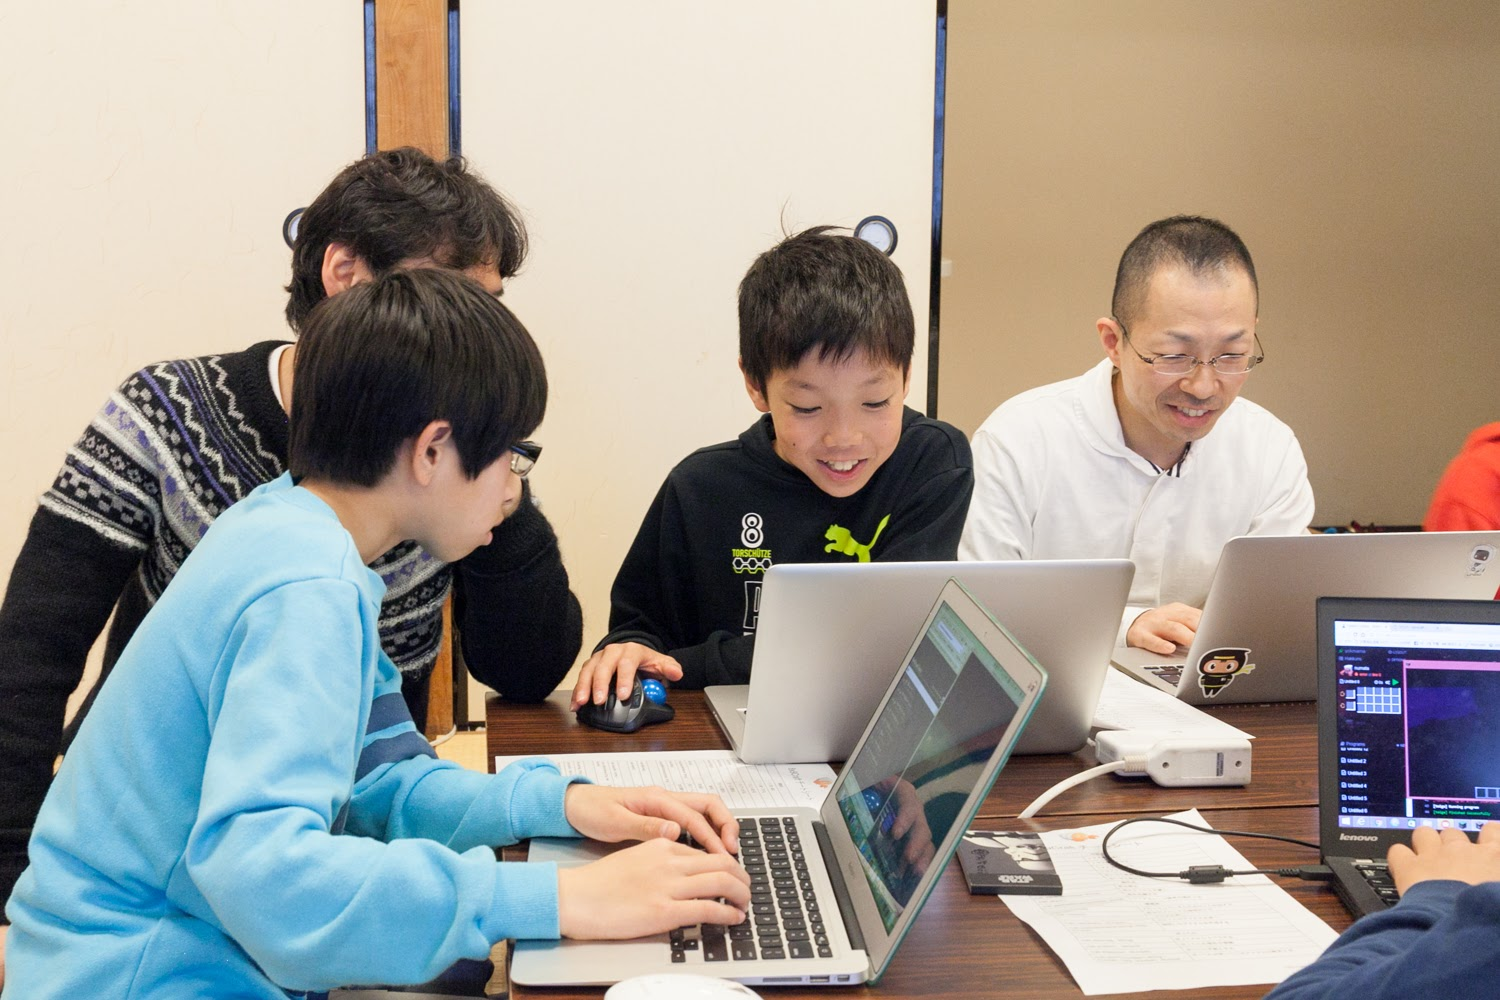 CoderDojoNishinomiya